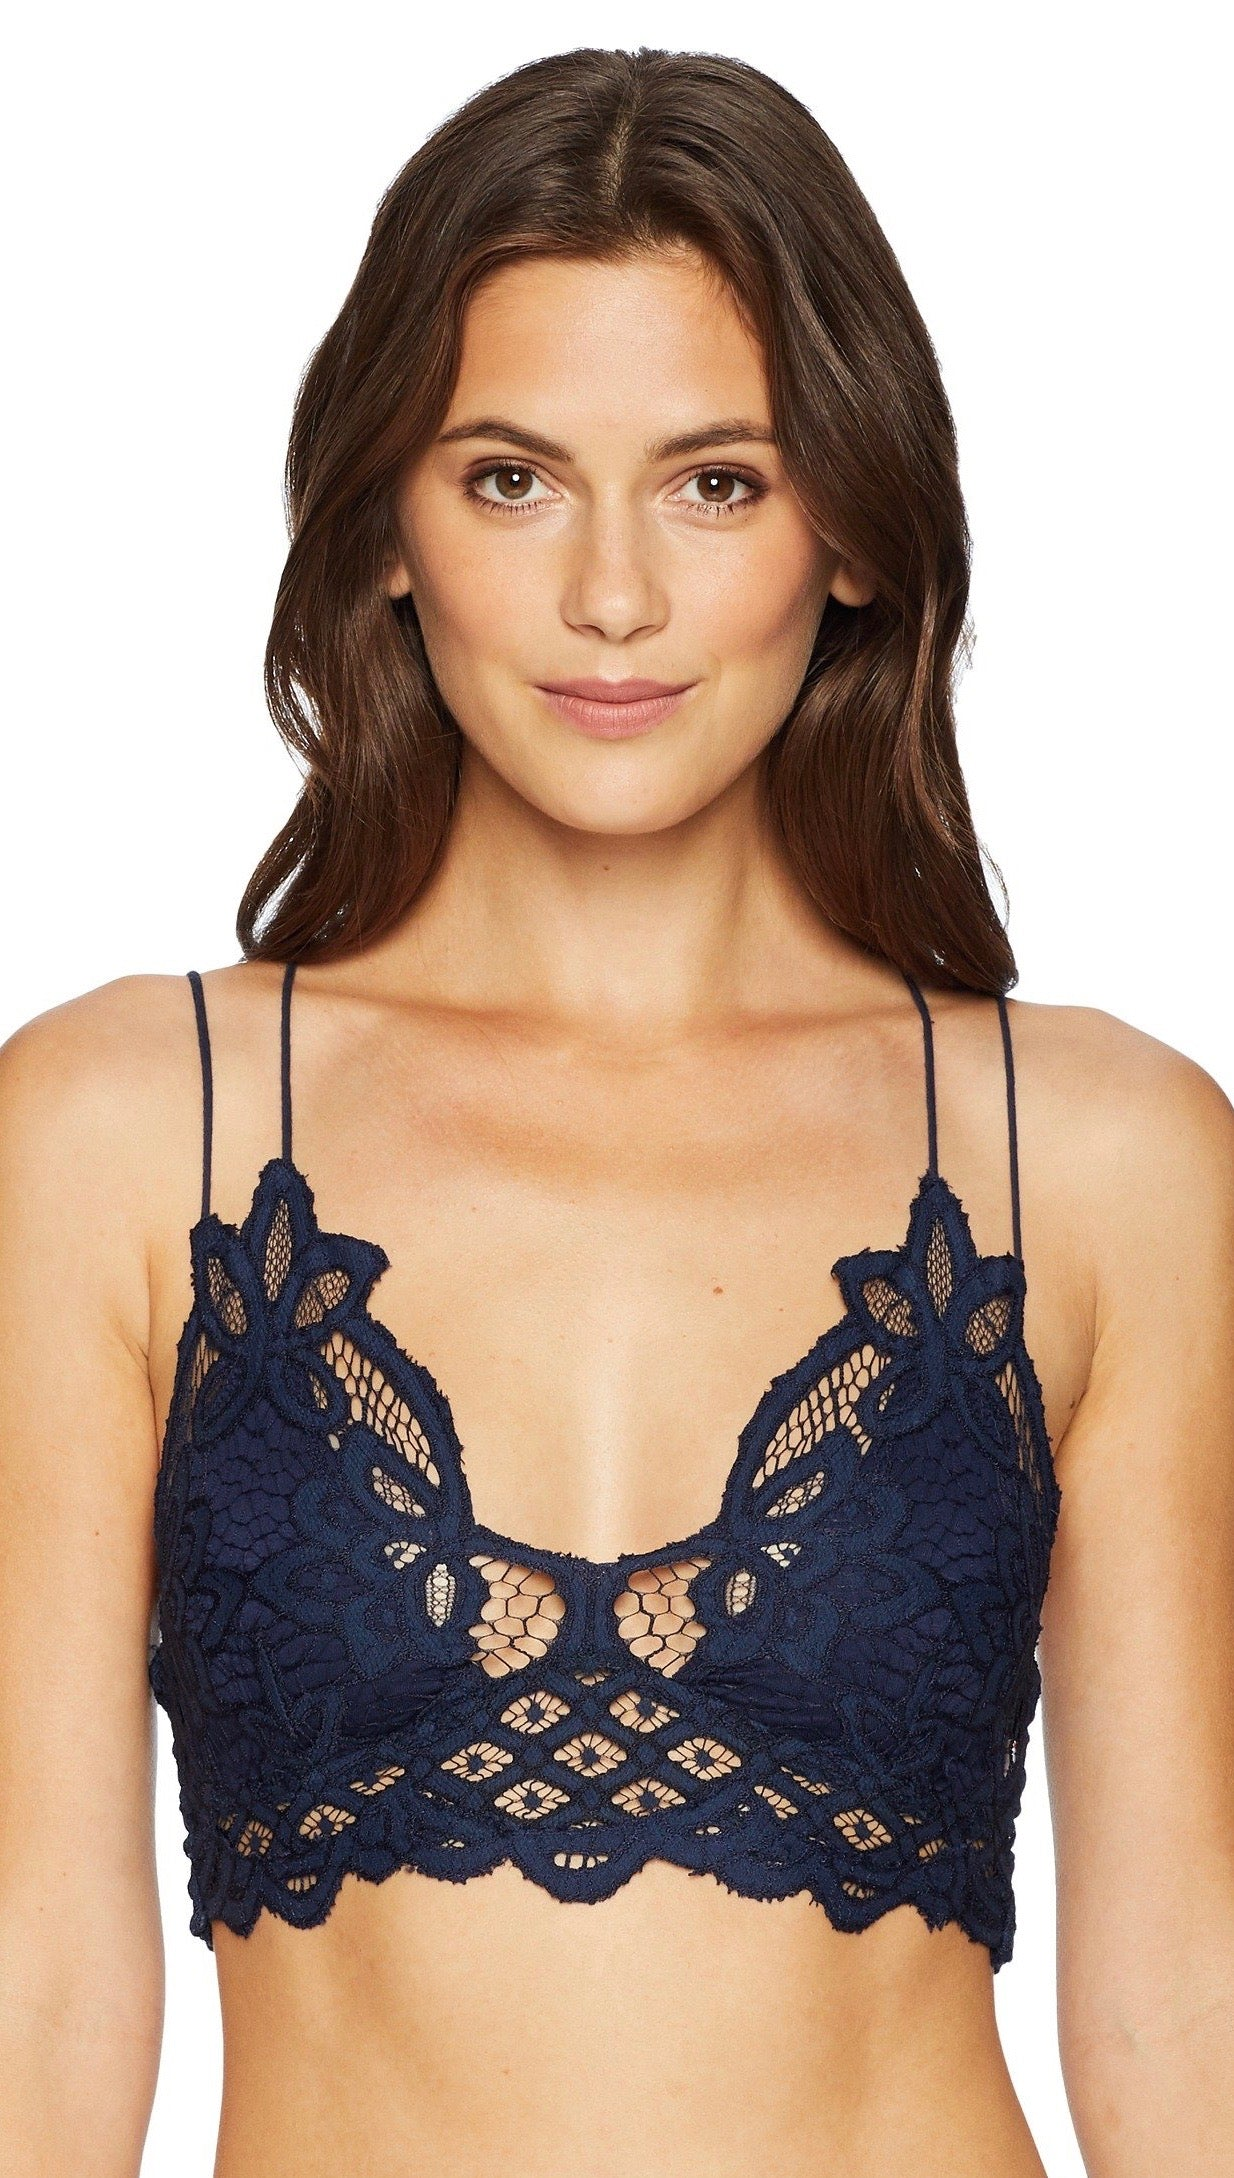 61fbf4b136ae9 Free People Adella Bralette Navy Blue Lace Bra Top Intimates